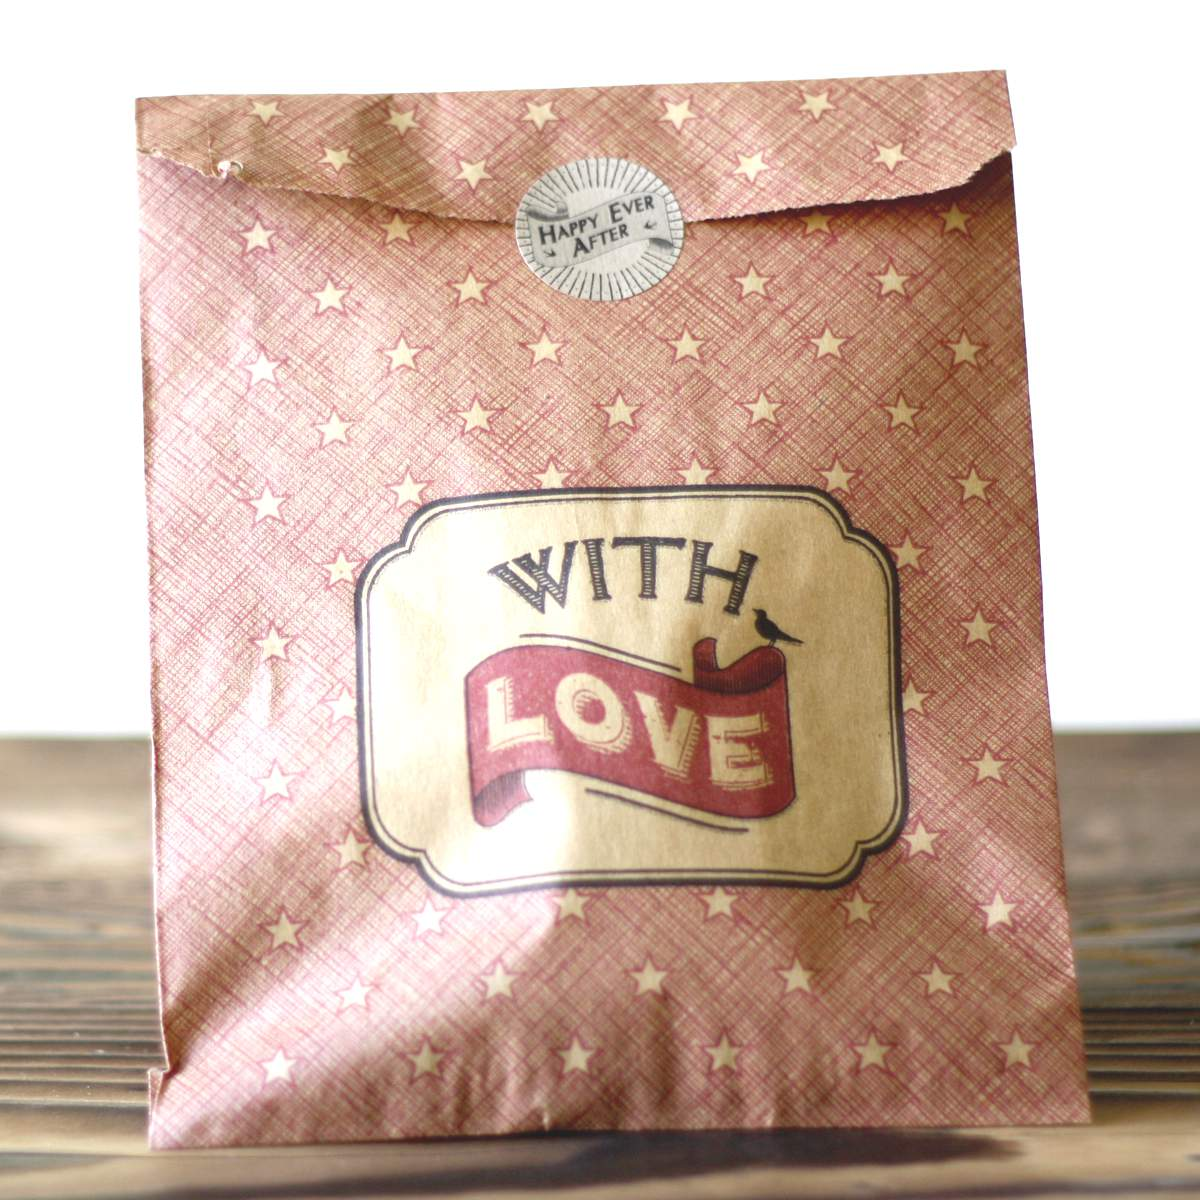 Paper gift bags £3.60 for 40 The Wedding of my Dreams